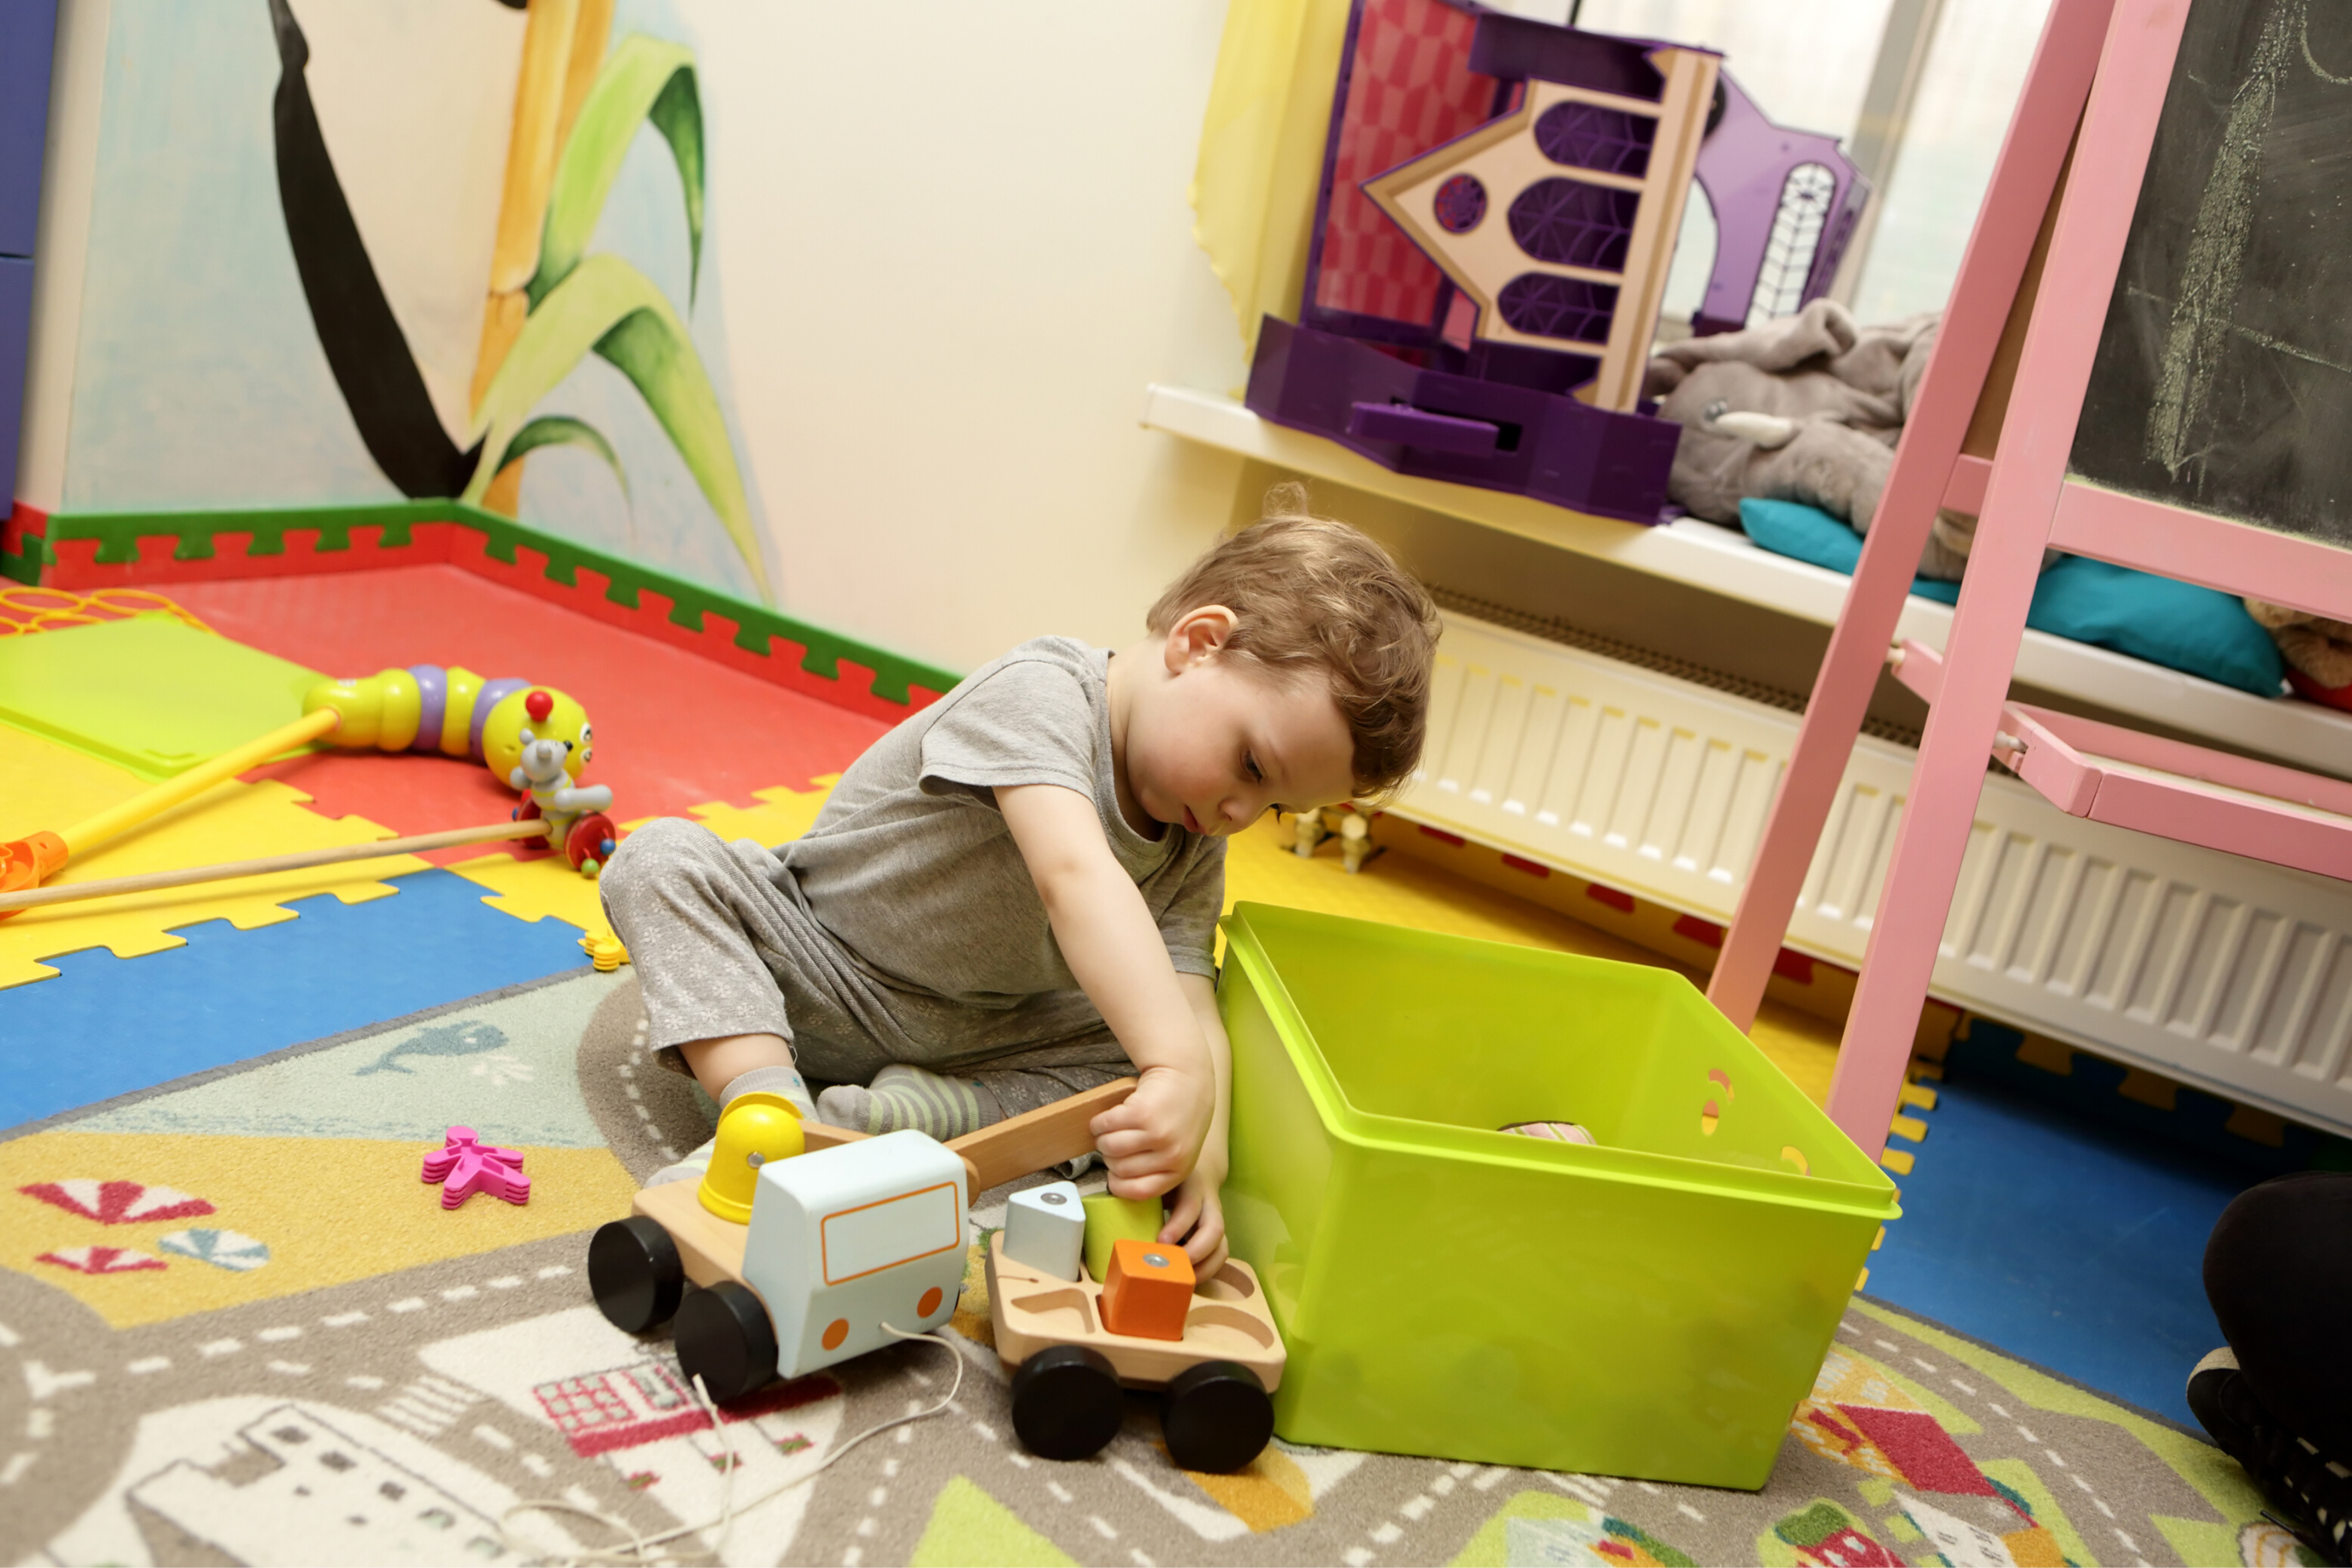 Little boy wearing a grey outfit, playing with toy cars beside a green plastic box